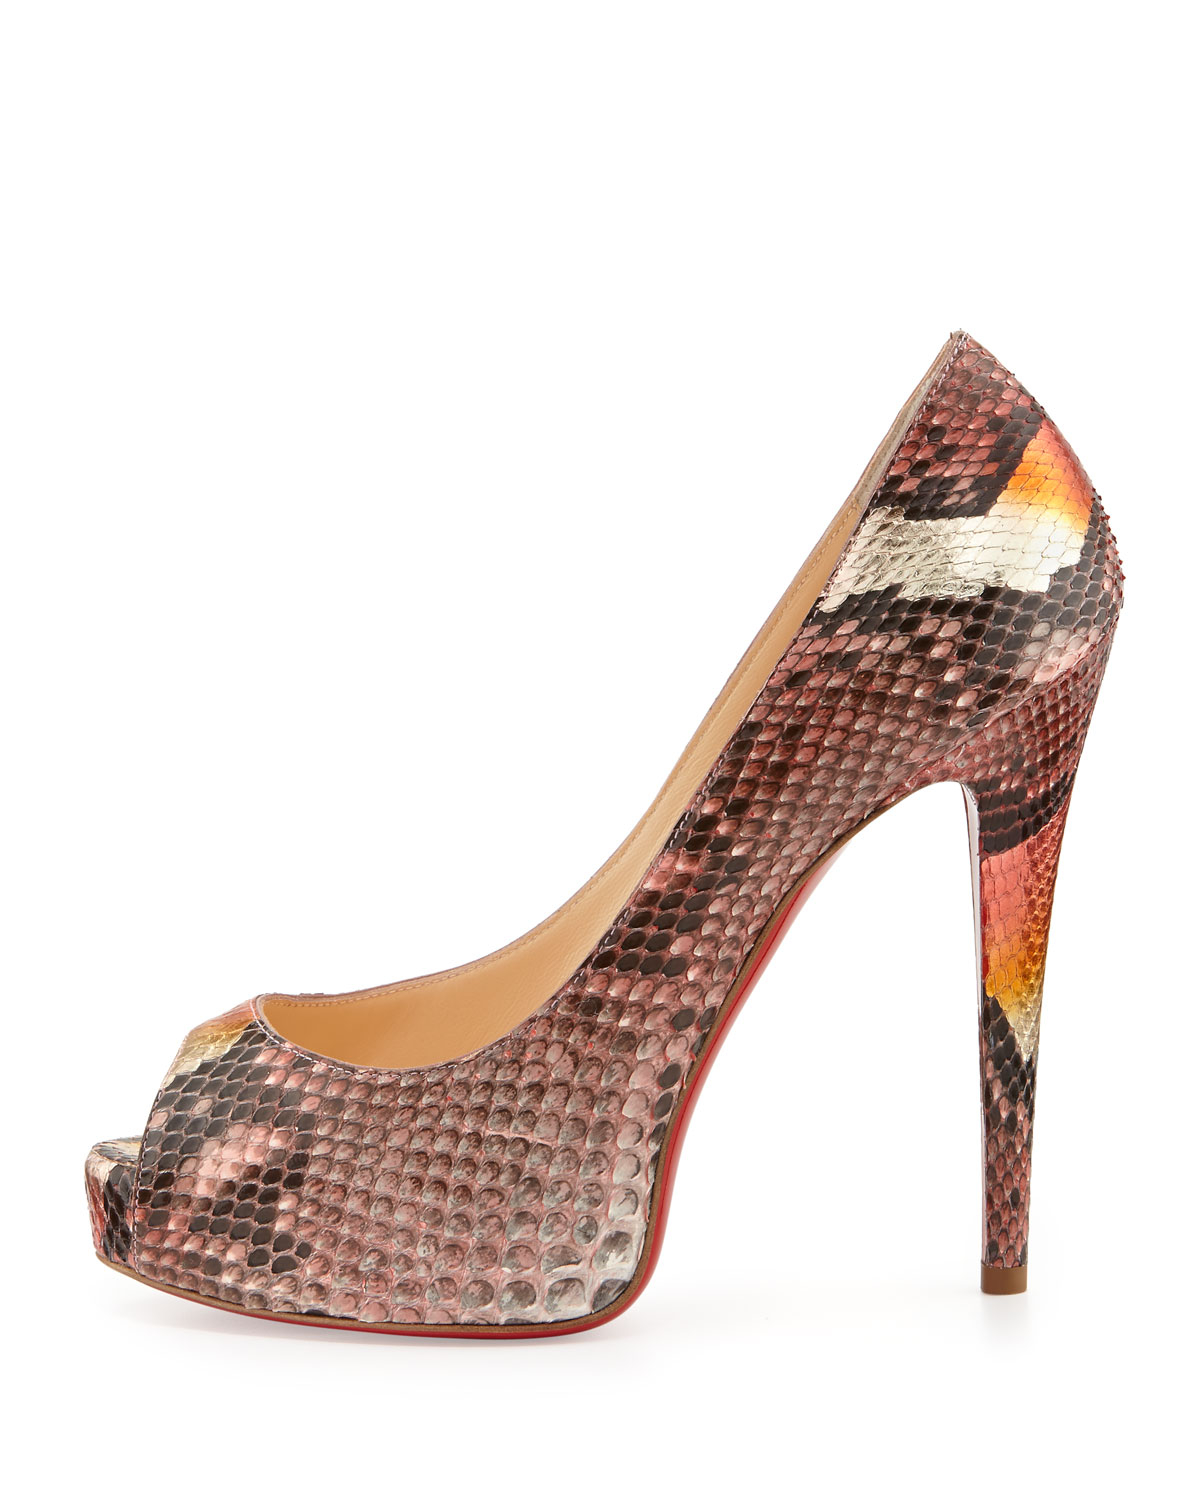 fake louboutin shoes - christian louboutin peep-toe wedges Grey and multicolor python ...